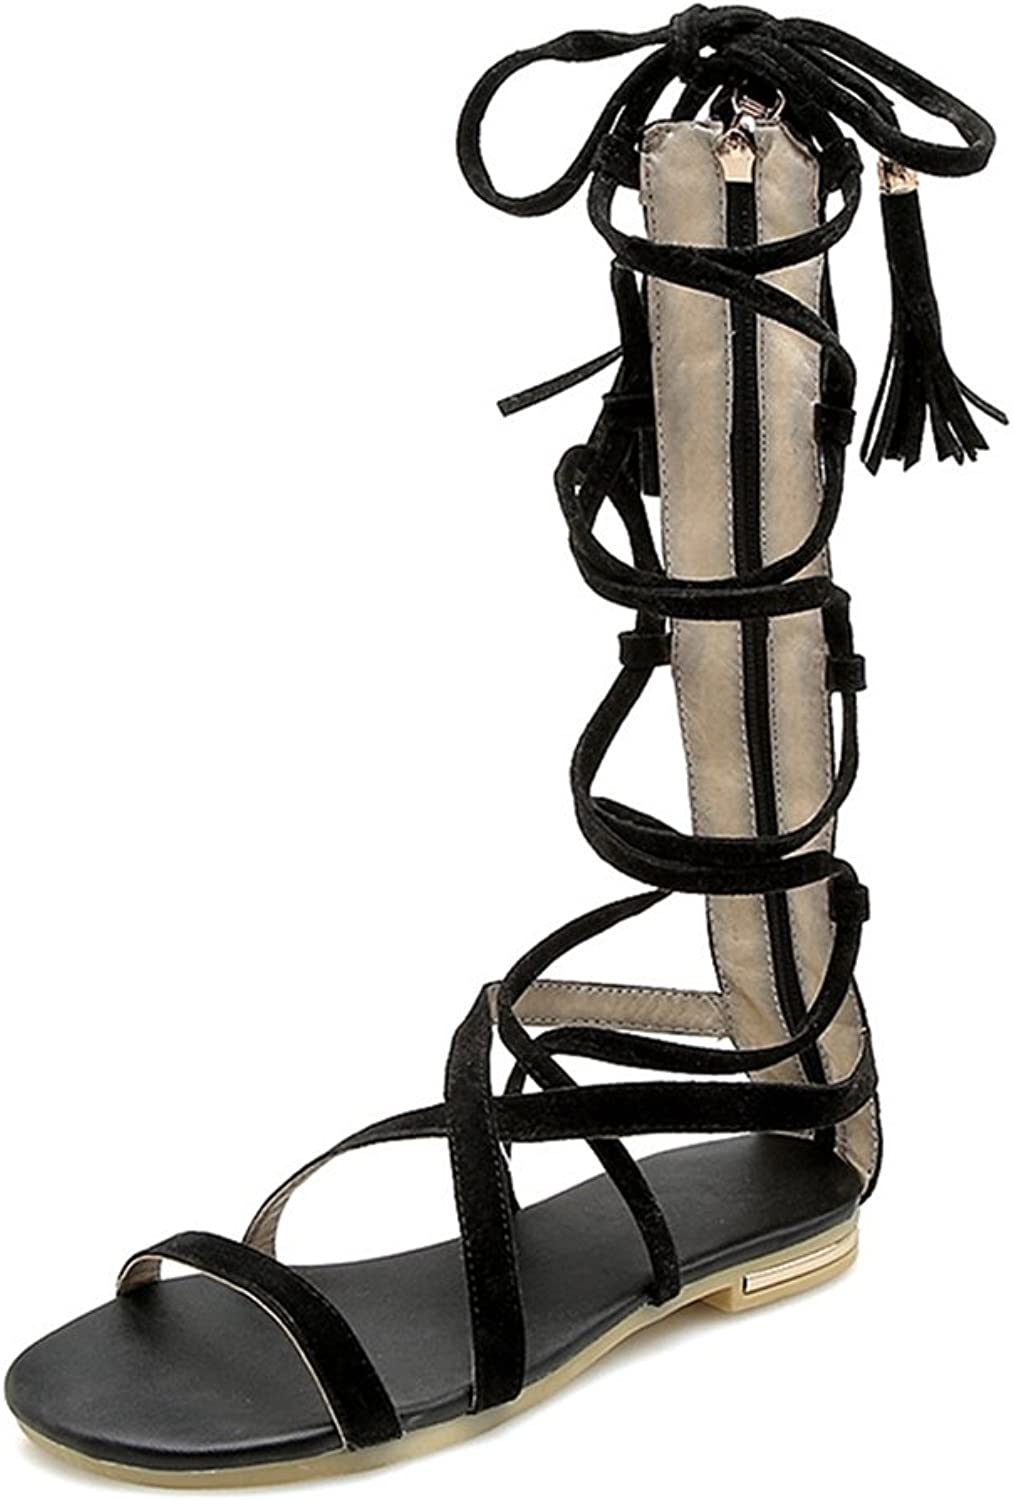 GIY Women's Flat Gladiator Strappy Sandals Tall Mid-Calf Open Toe Zipper Caged Roman Fringe Sandals shoes